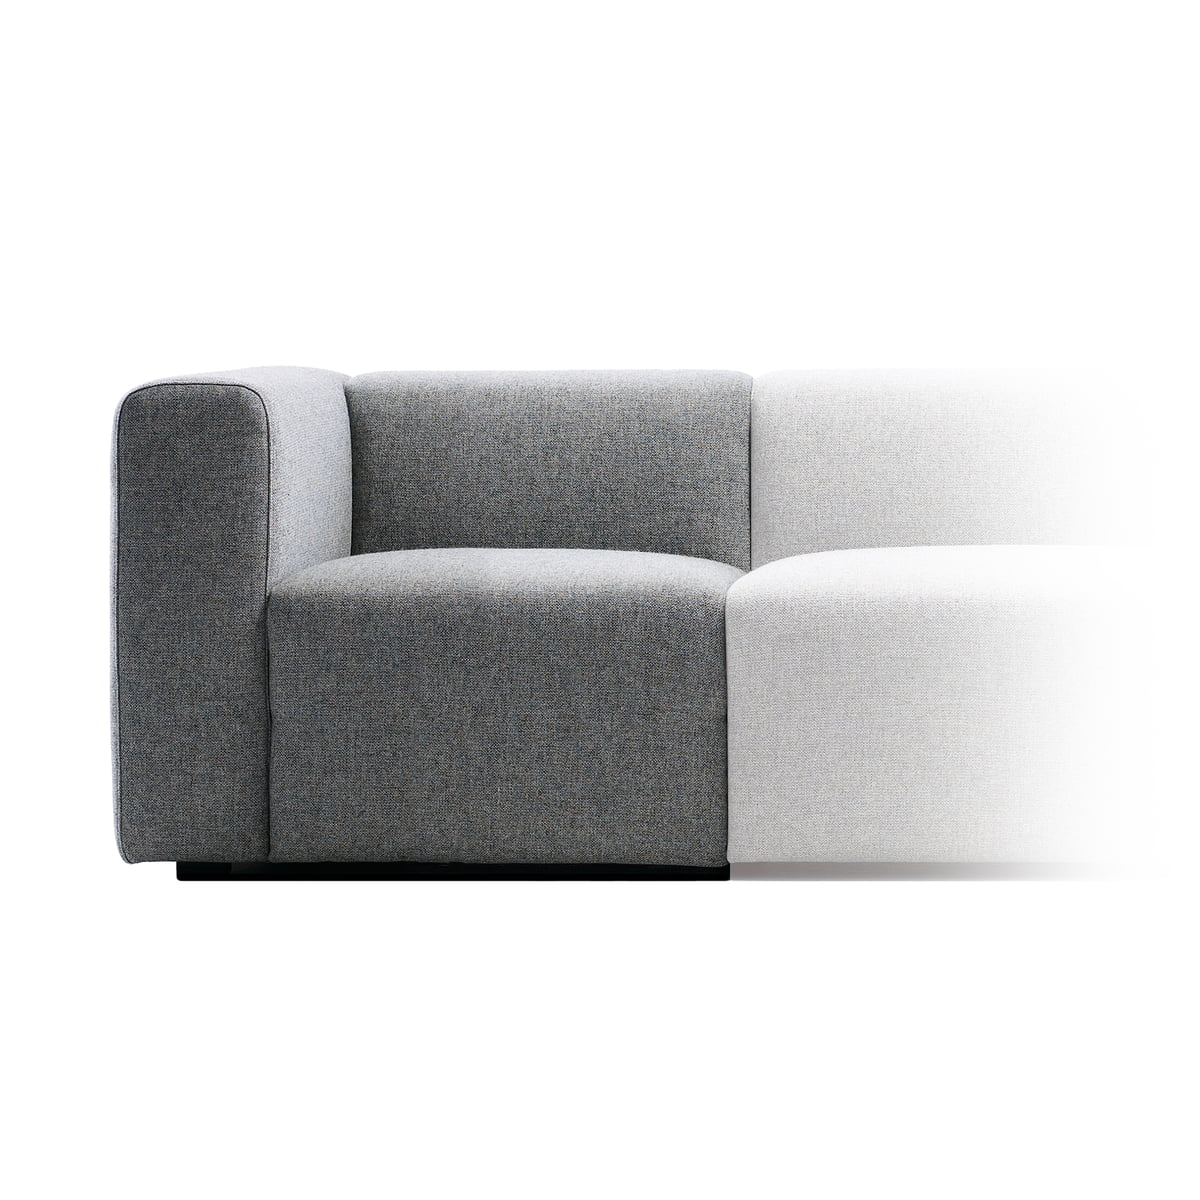 Mags Sofa Modules, Narrow, By Hay In Our Shop